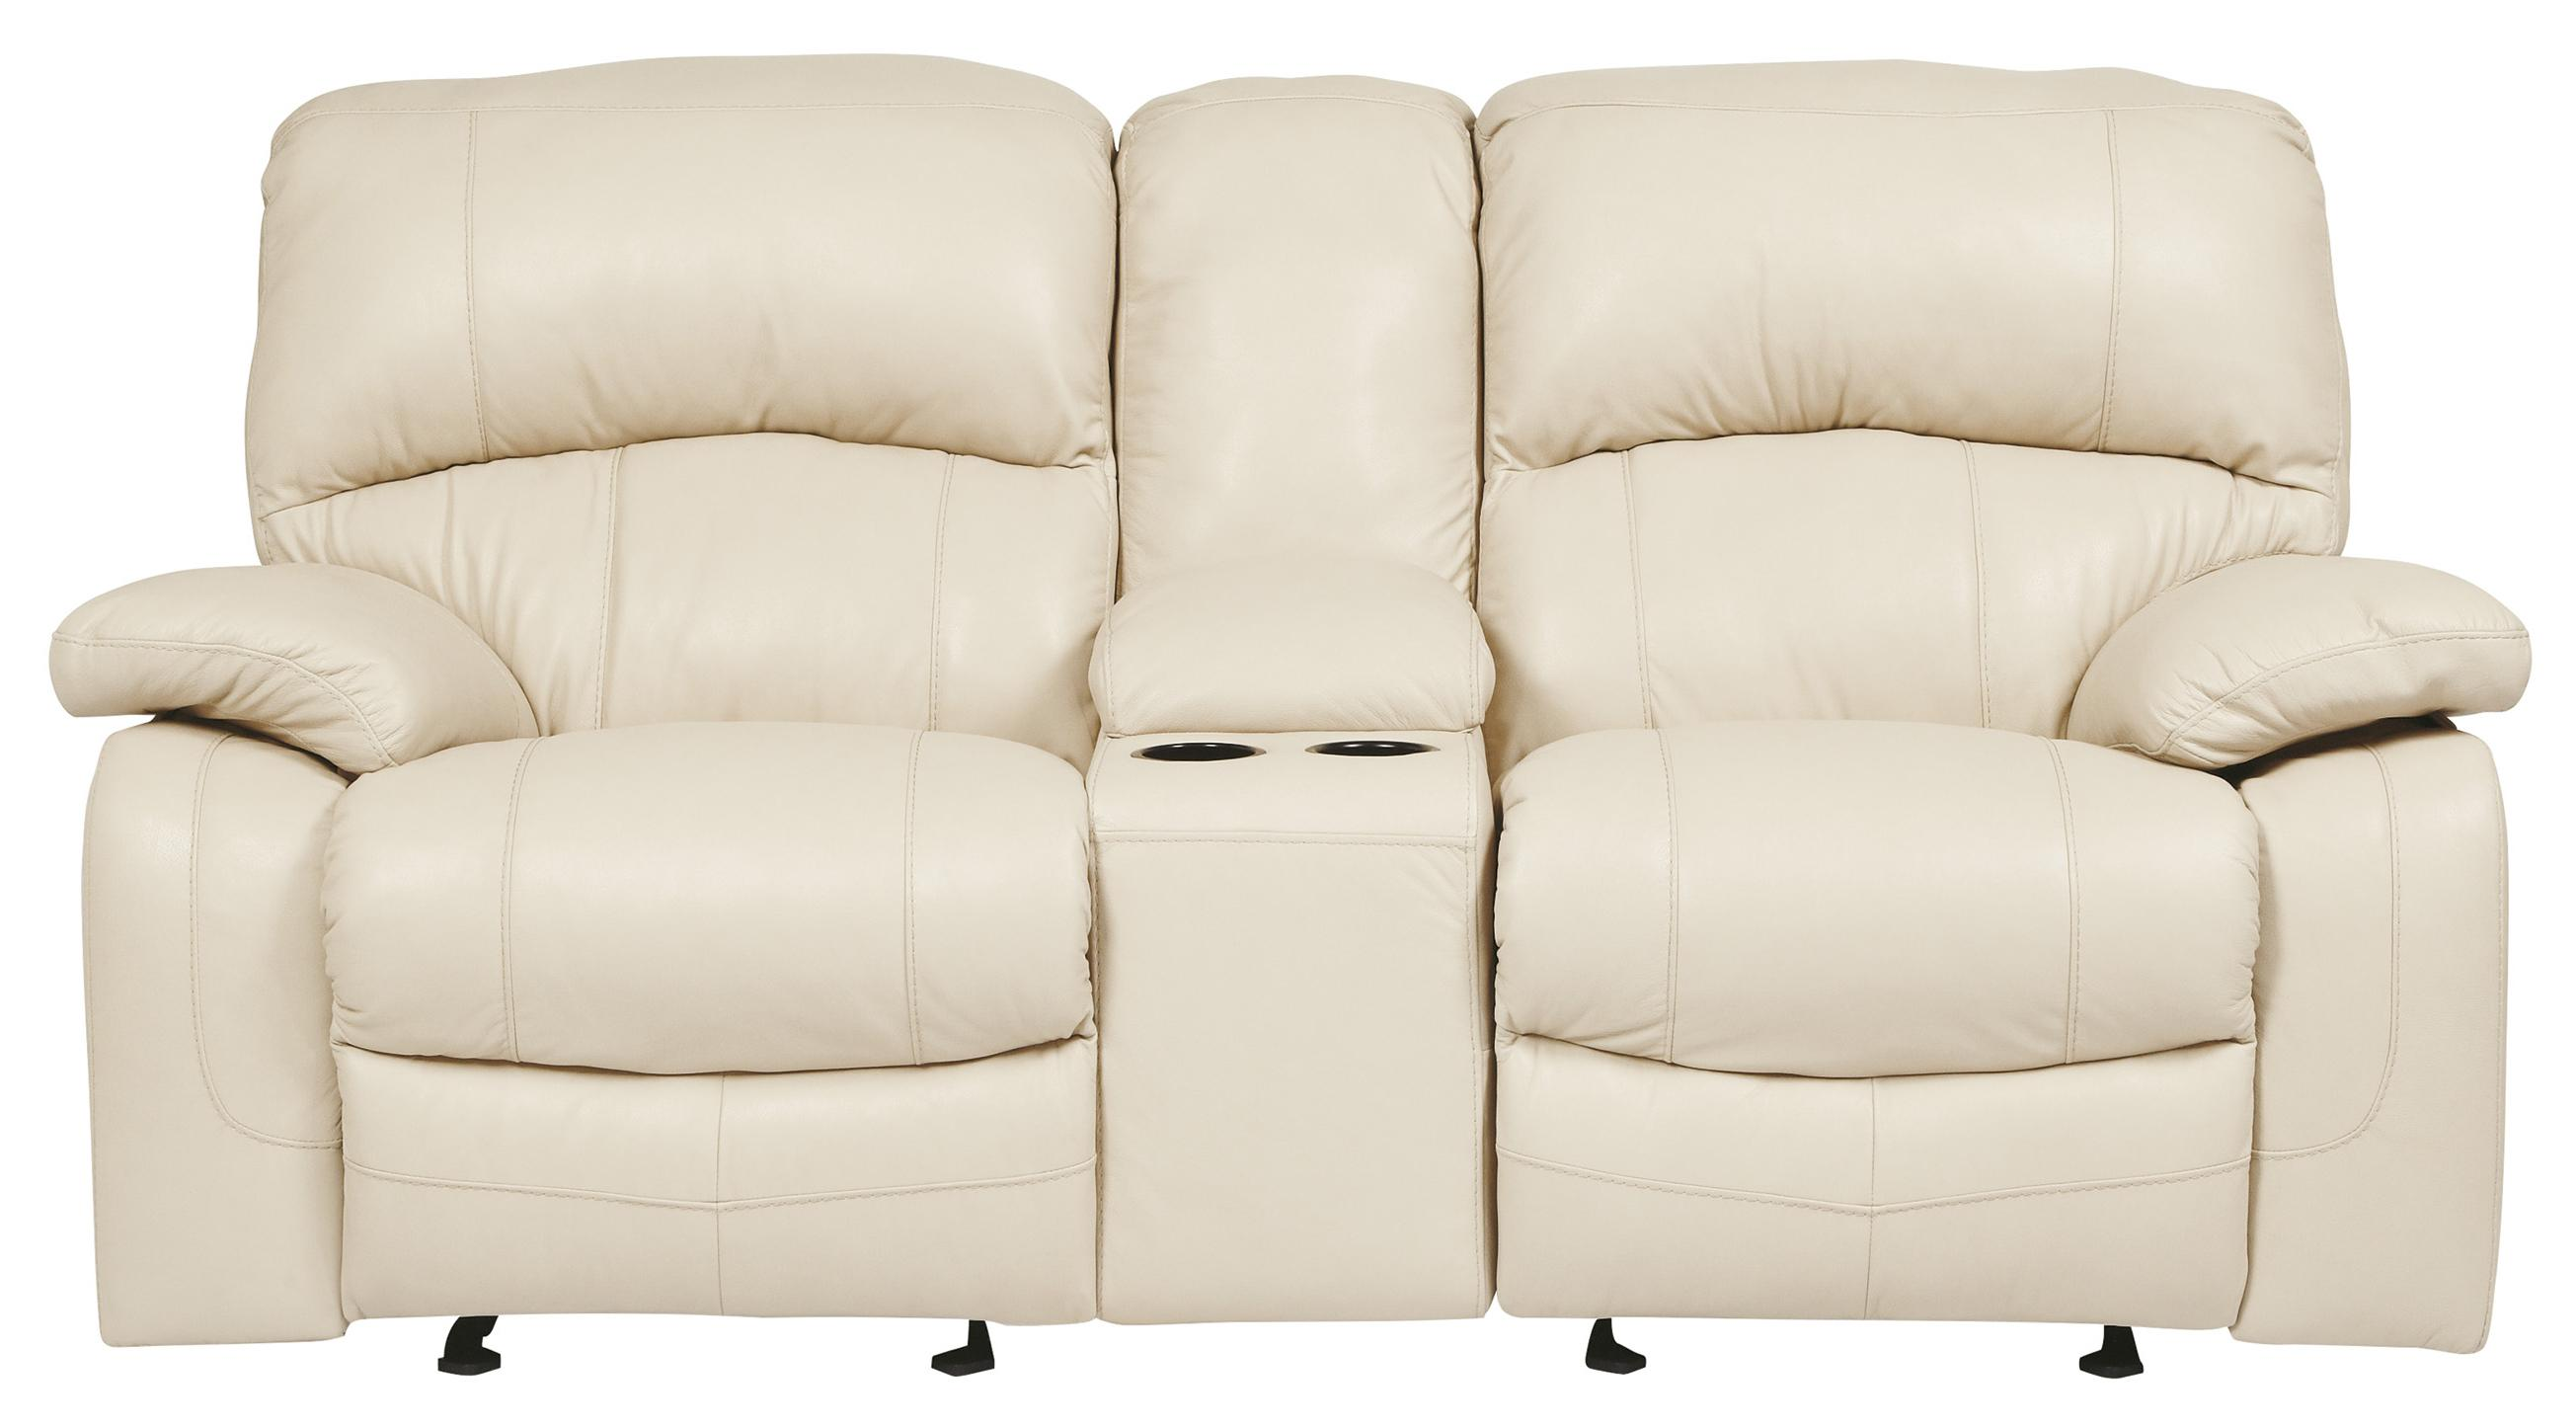 Signature Design by Ashley Damacio - Cream Glider Recliner Power Loveseat w/ Console - Item Number: U9820191